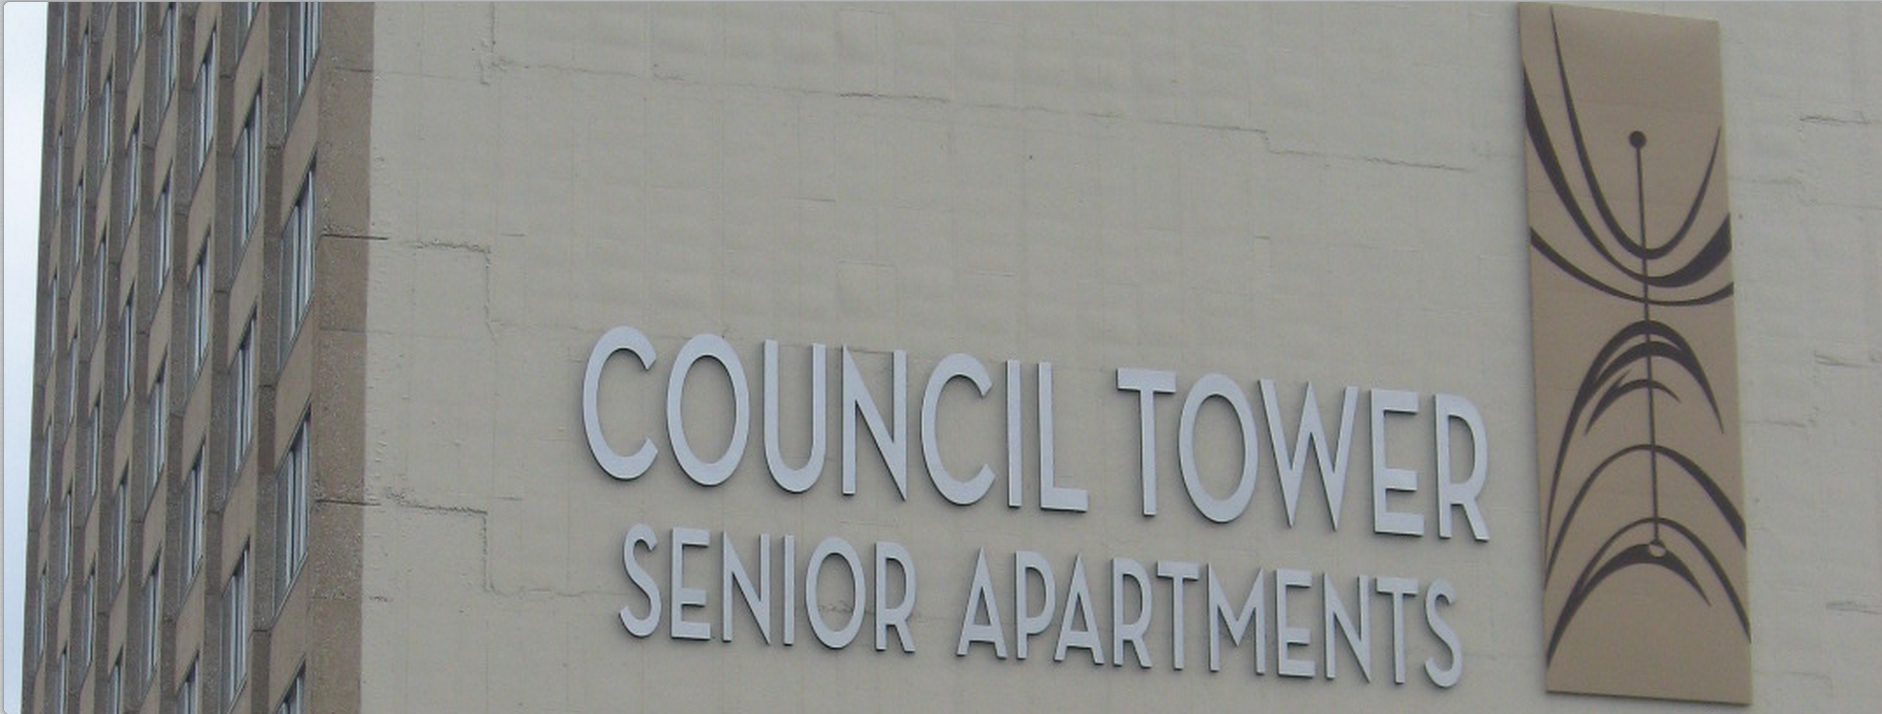 COUNCIL TOWER SENIOR APARTMENTS